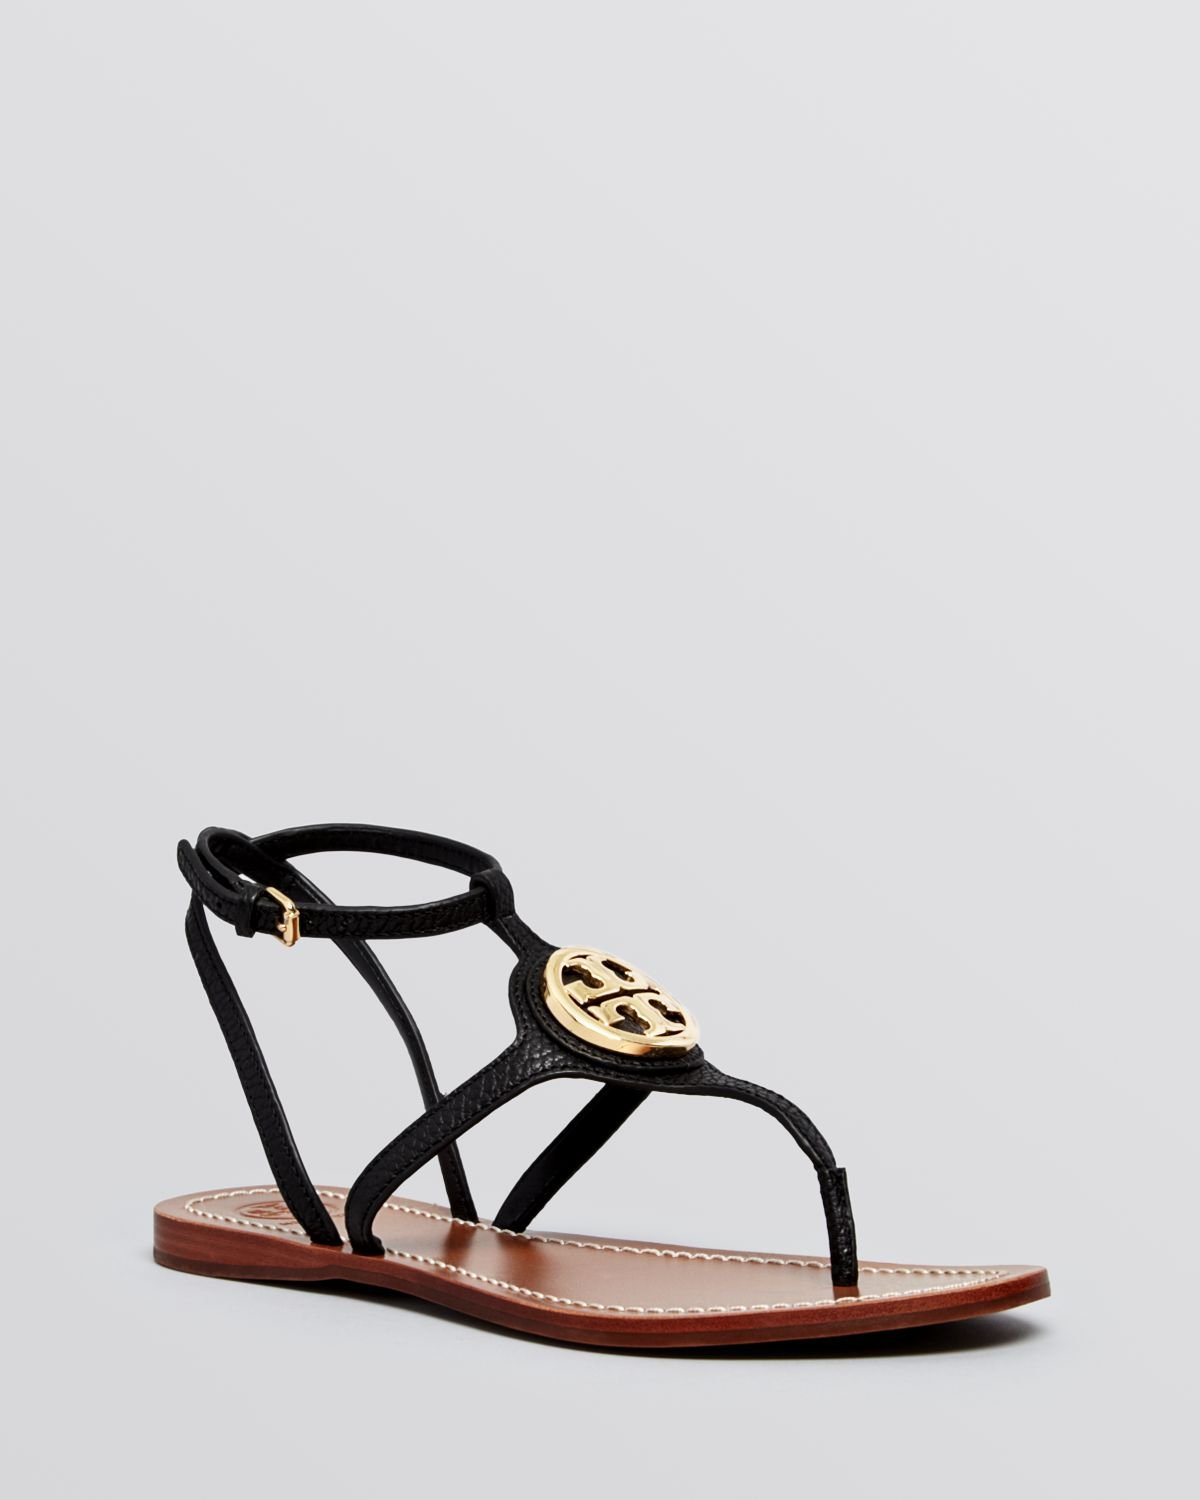 Gallery - Tory Burch Flat Thong Sandals Leticia In Black Lyst